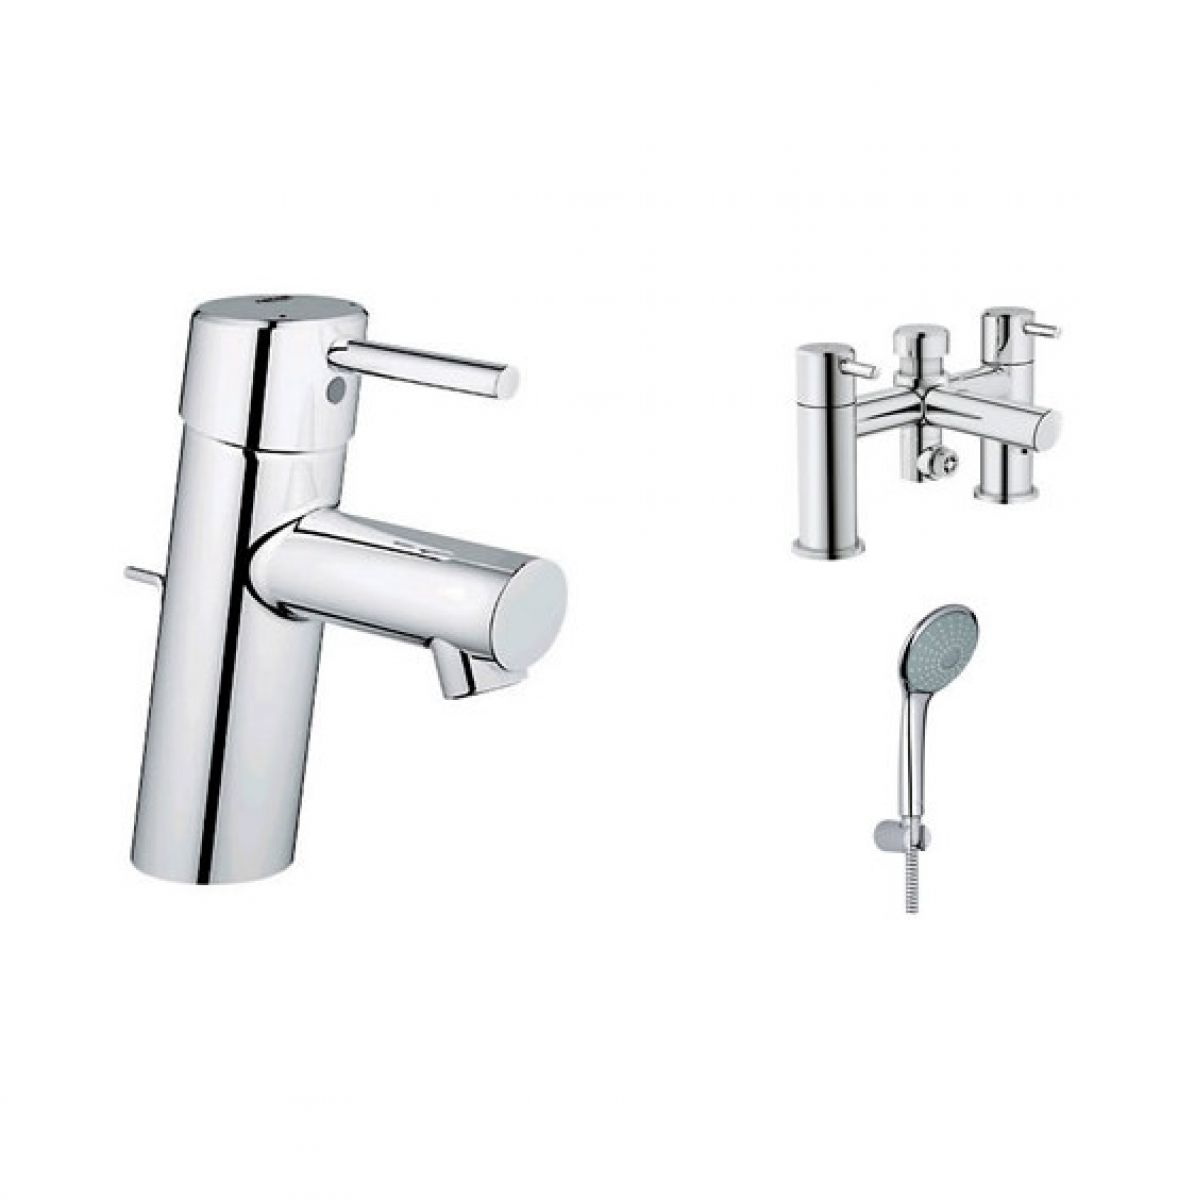 Grohe concetto basin and bath shower mixer with euphoria - Grohe concetto shower ...